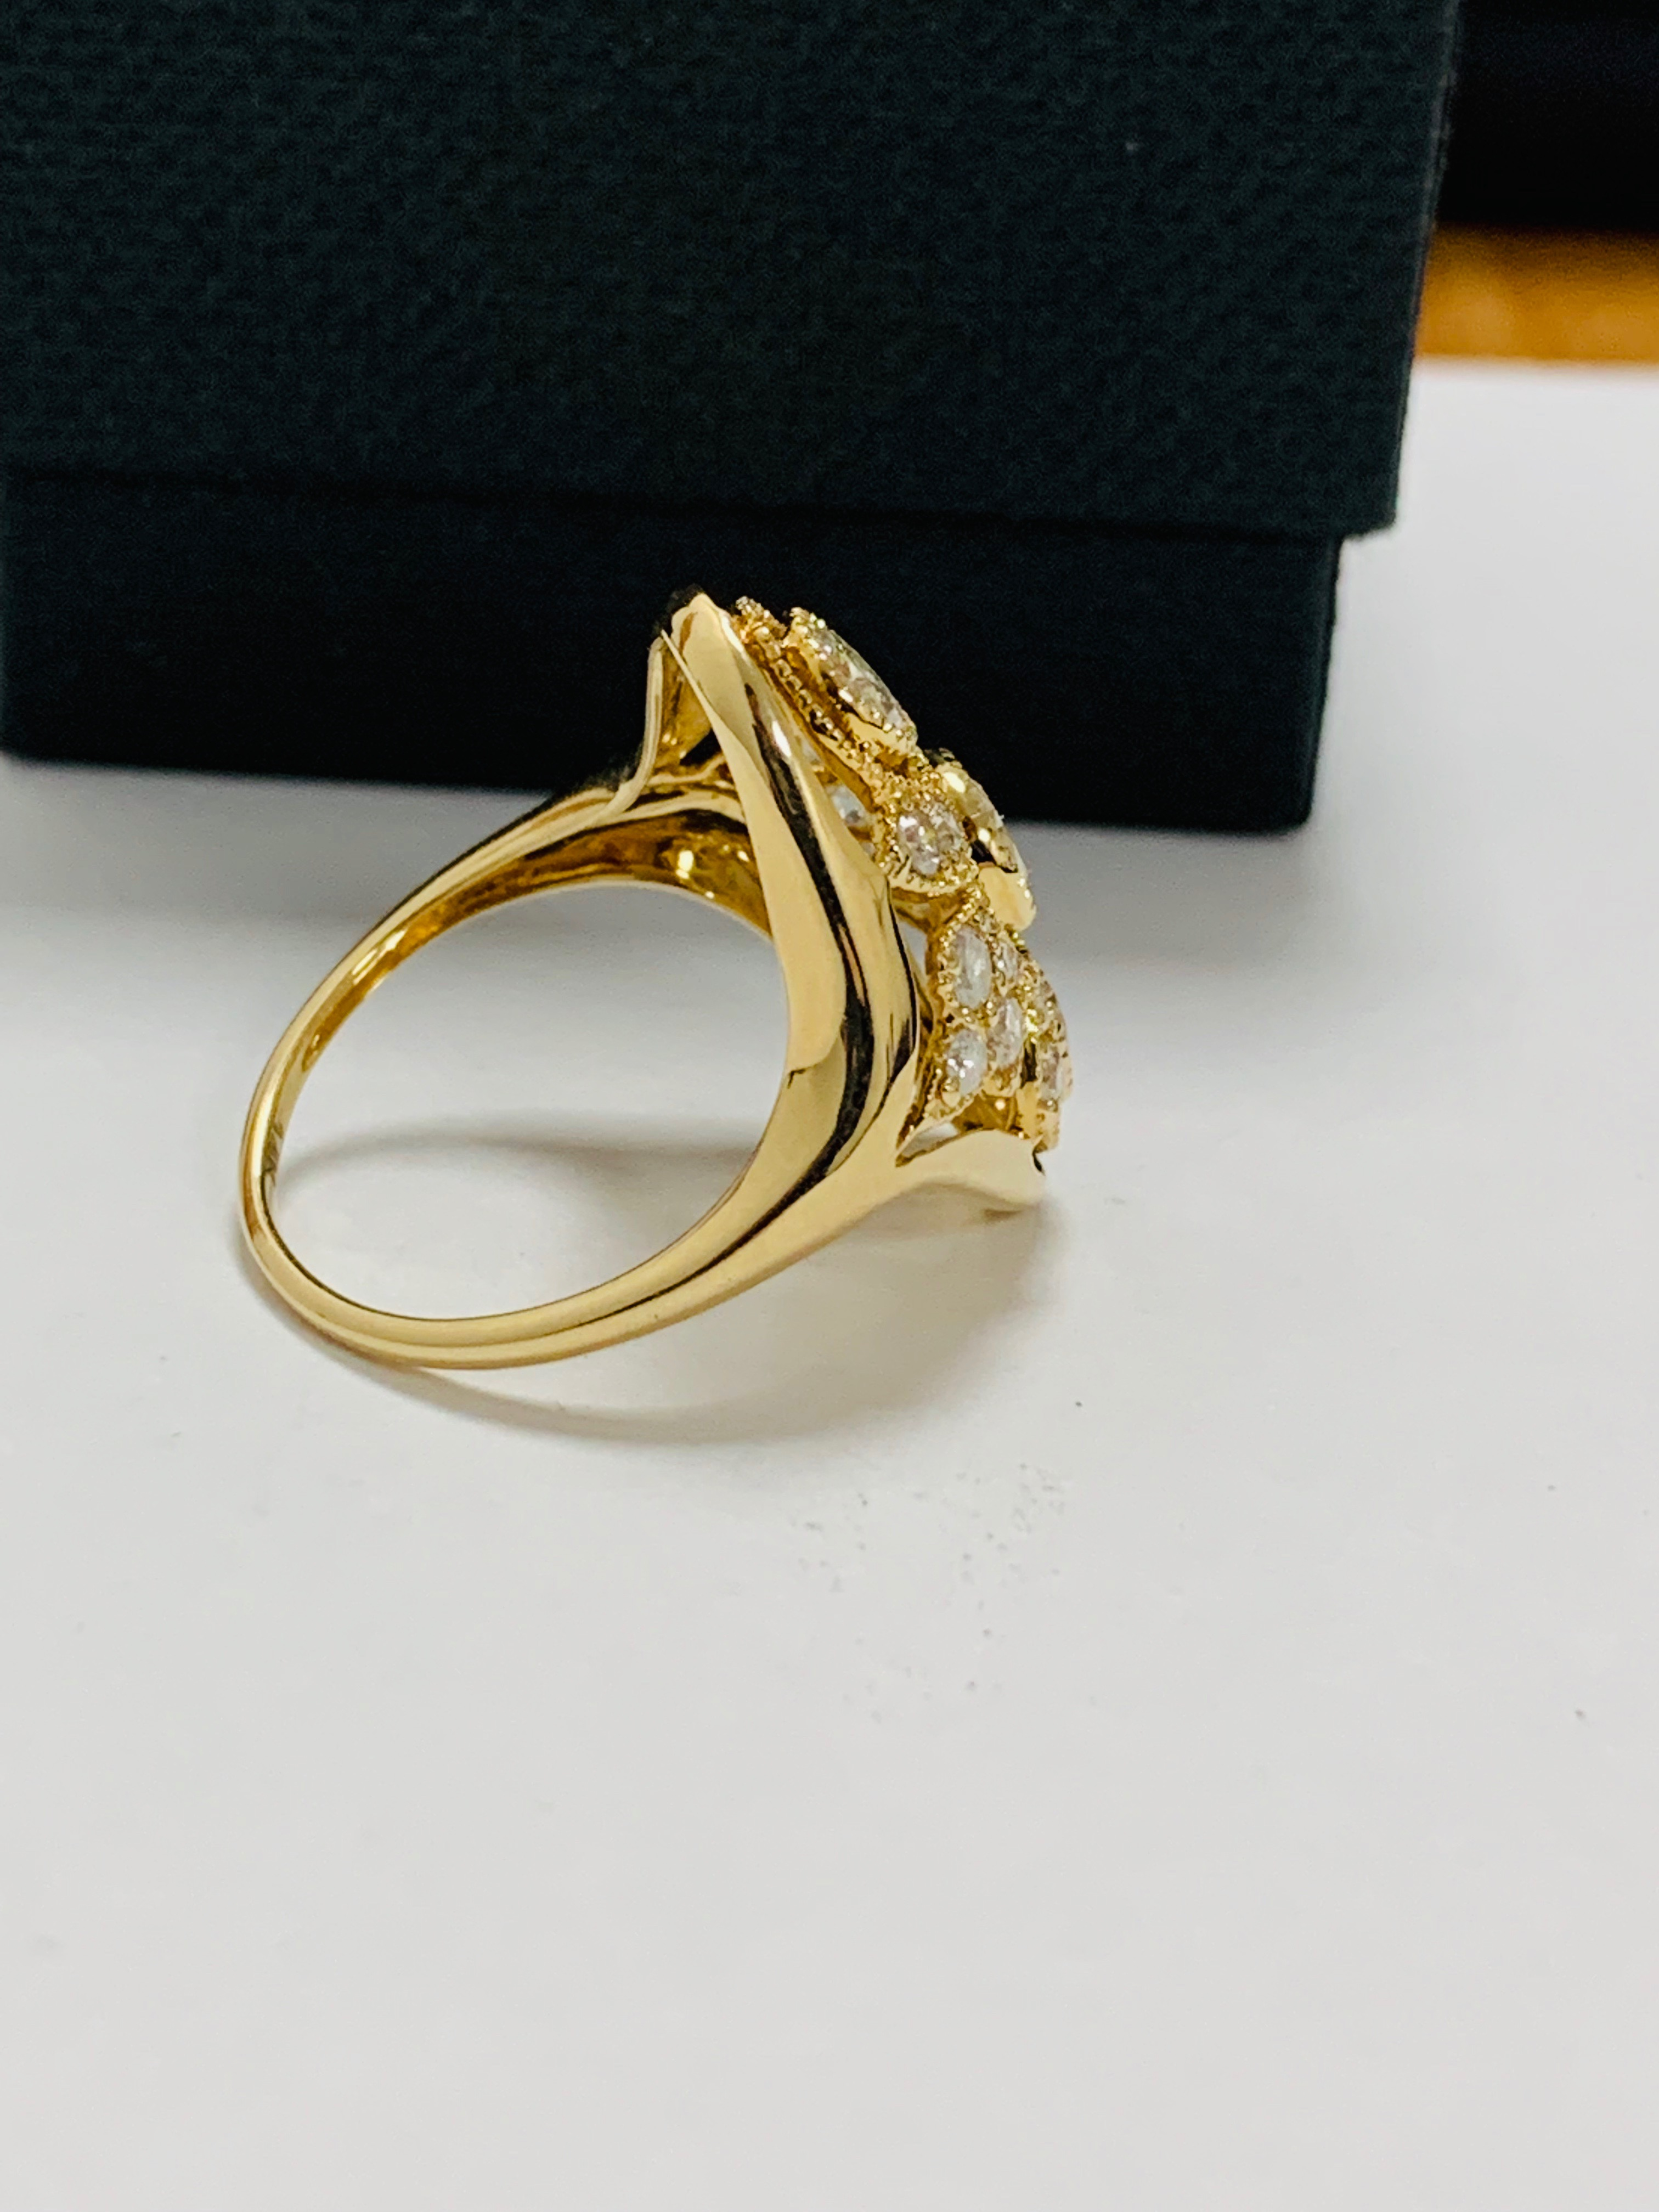 14ct yellow gold diamond ring. - Image 6 of 11